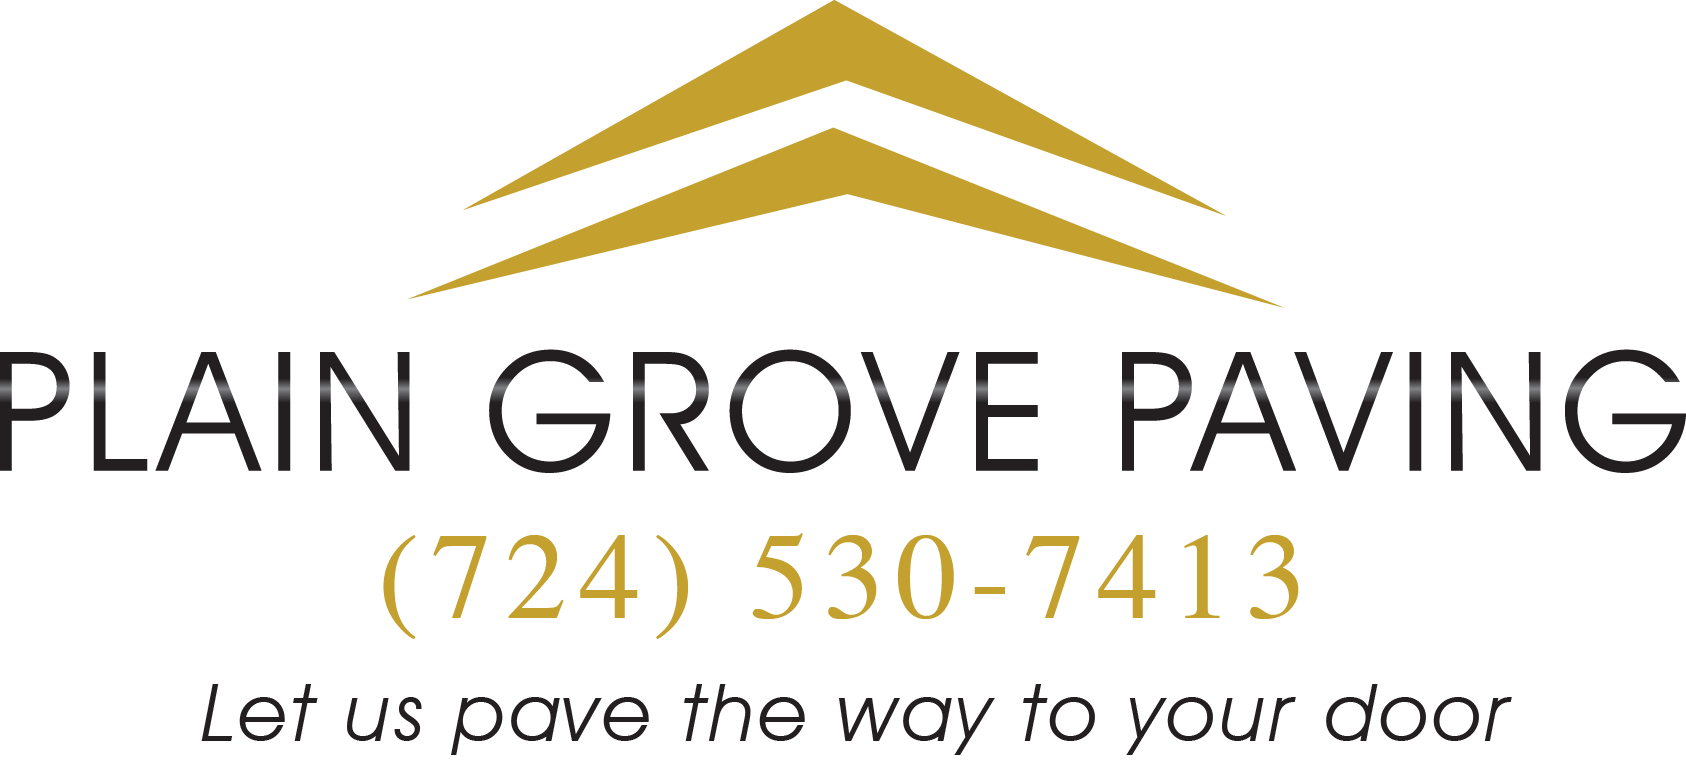 Plain Grove Paving – Western Pennsylvania Paving and Asphalt Services offering asphalt paving services in slippery rock, mercer and surround areas.